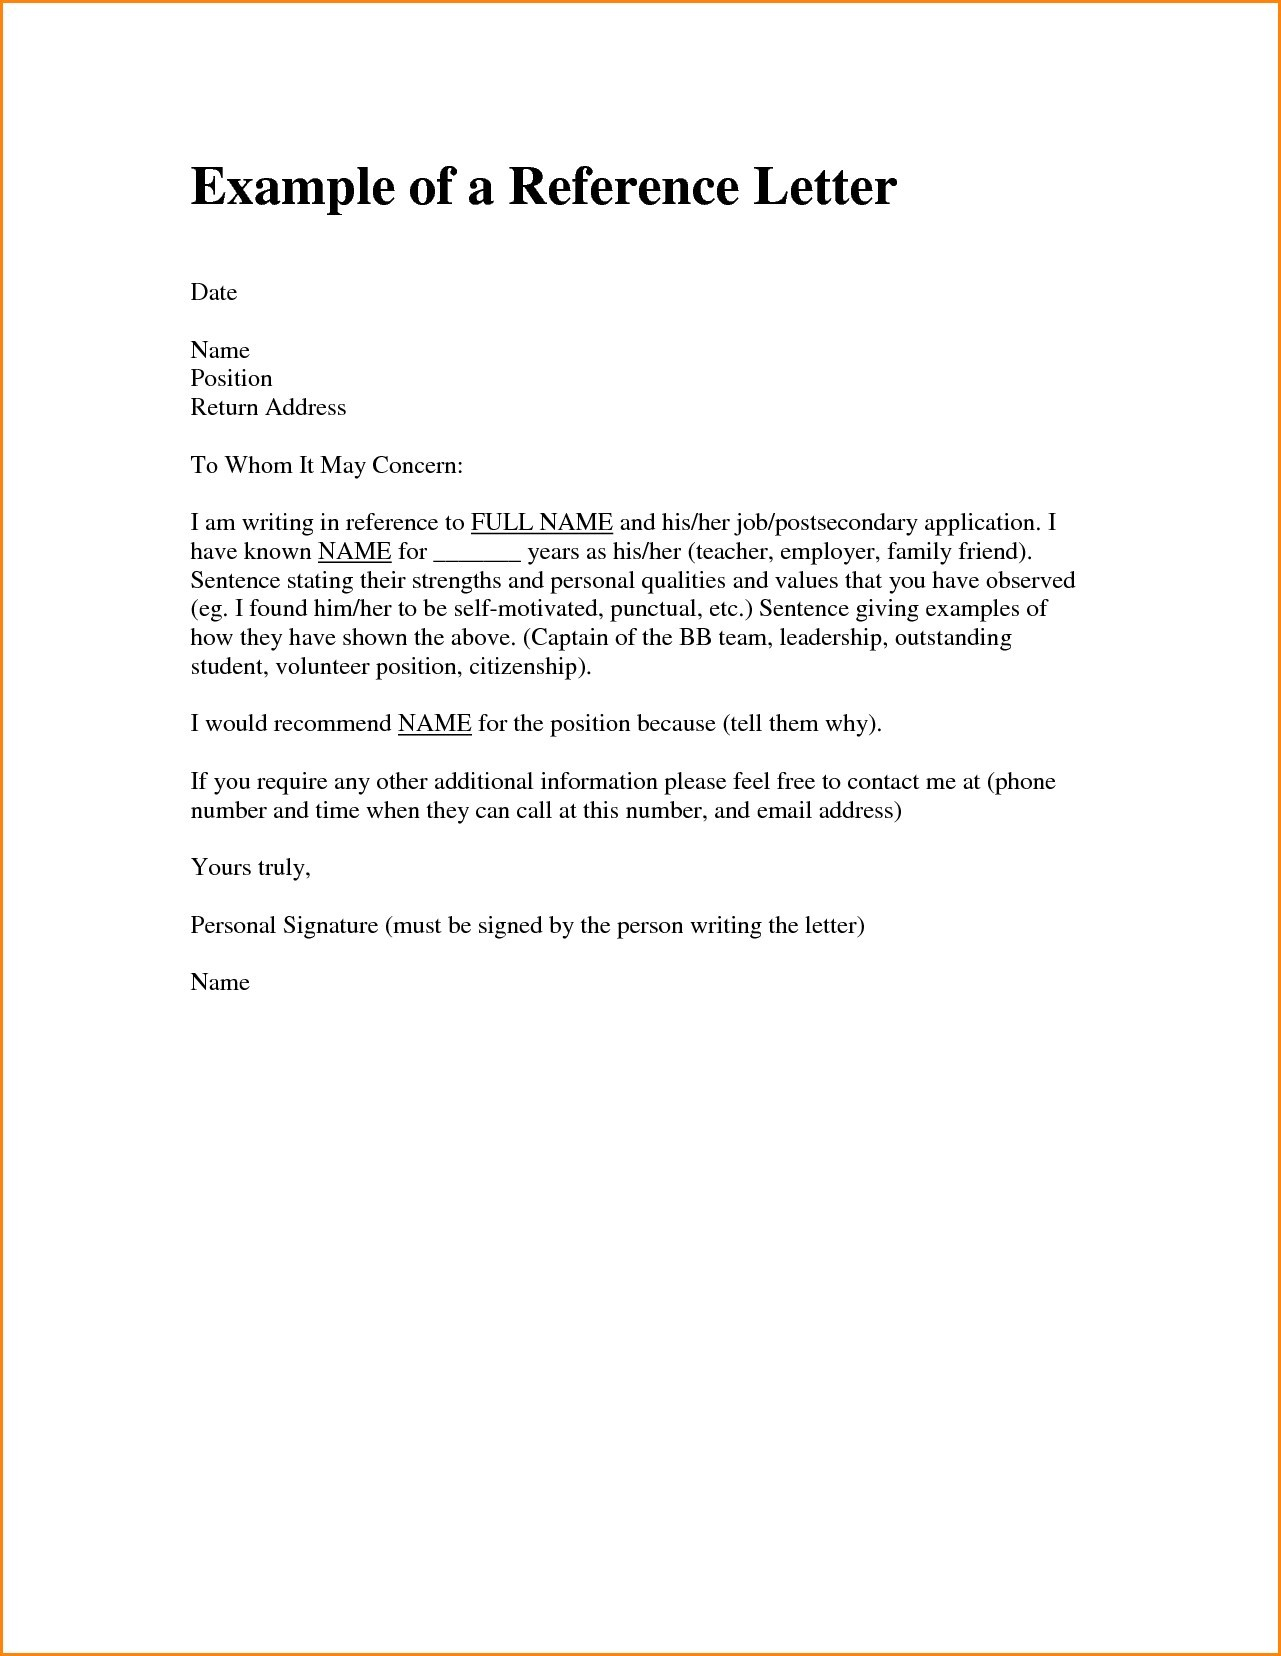 Immigration Recommendation Letter Template - Letter Re Mendation Template to whom It May Concern New Letter